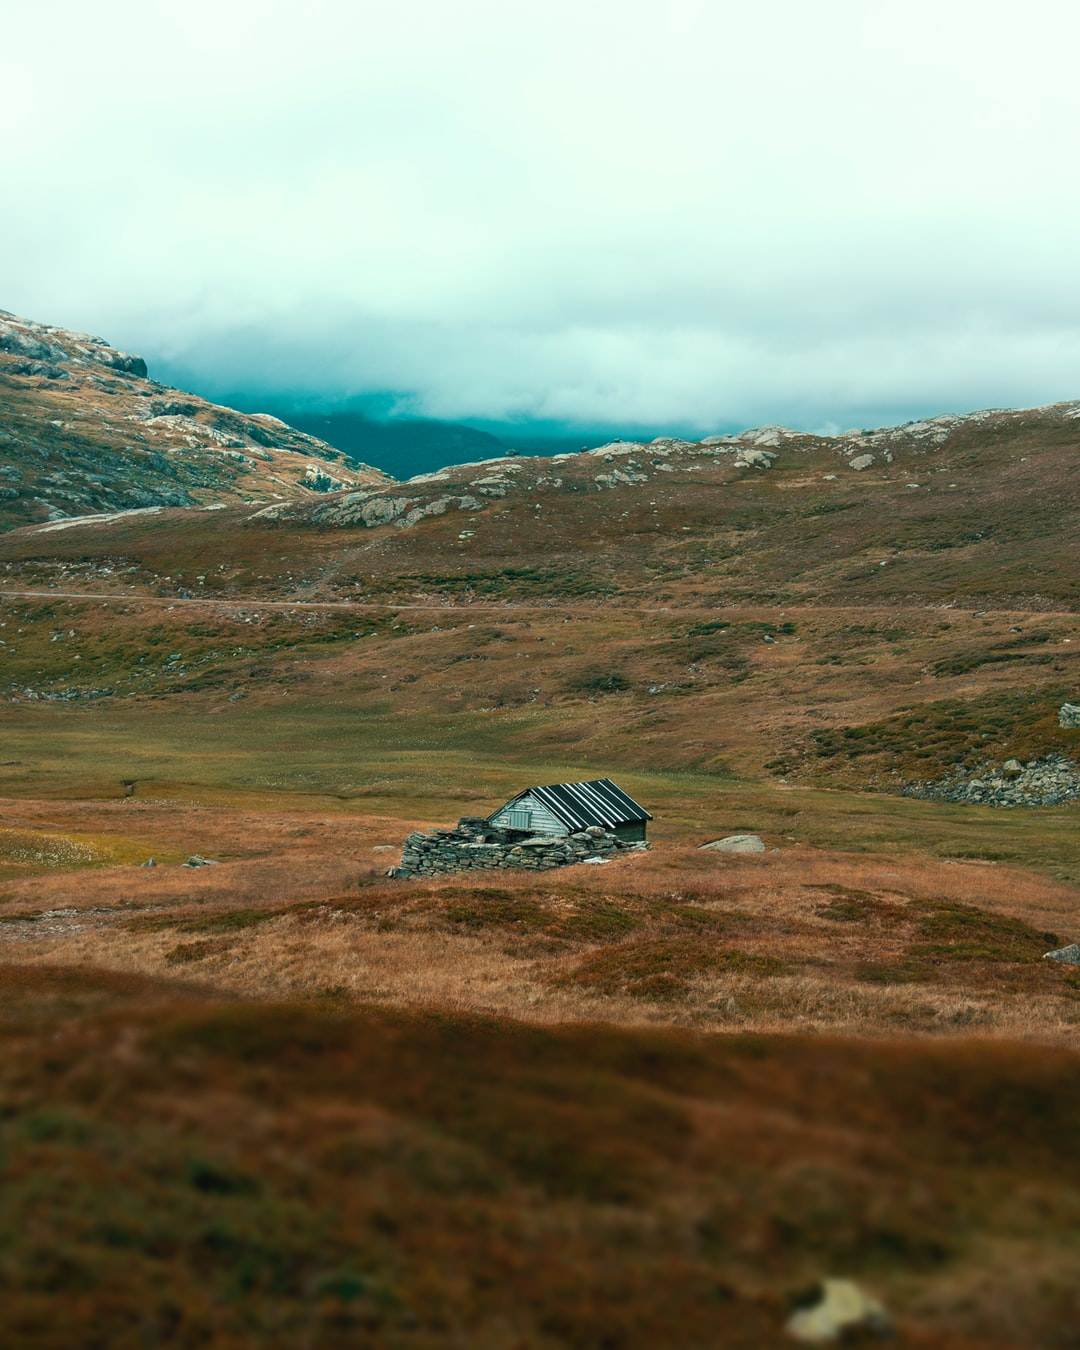 Presumably a shepherds cabin in the Norwegian mountains.